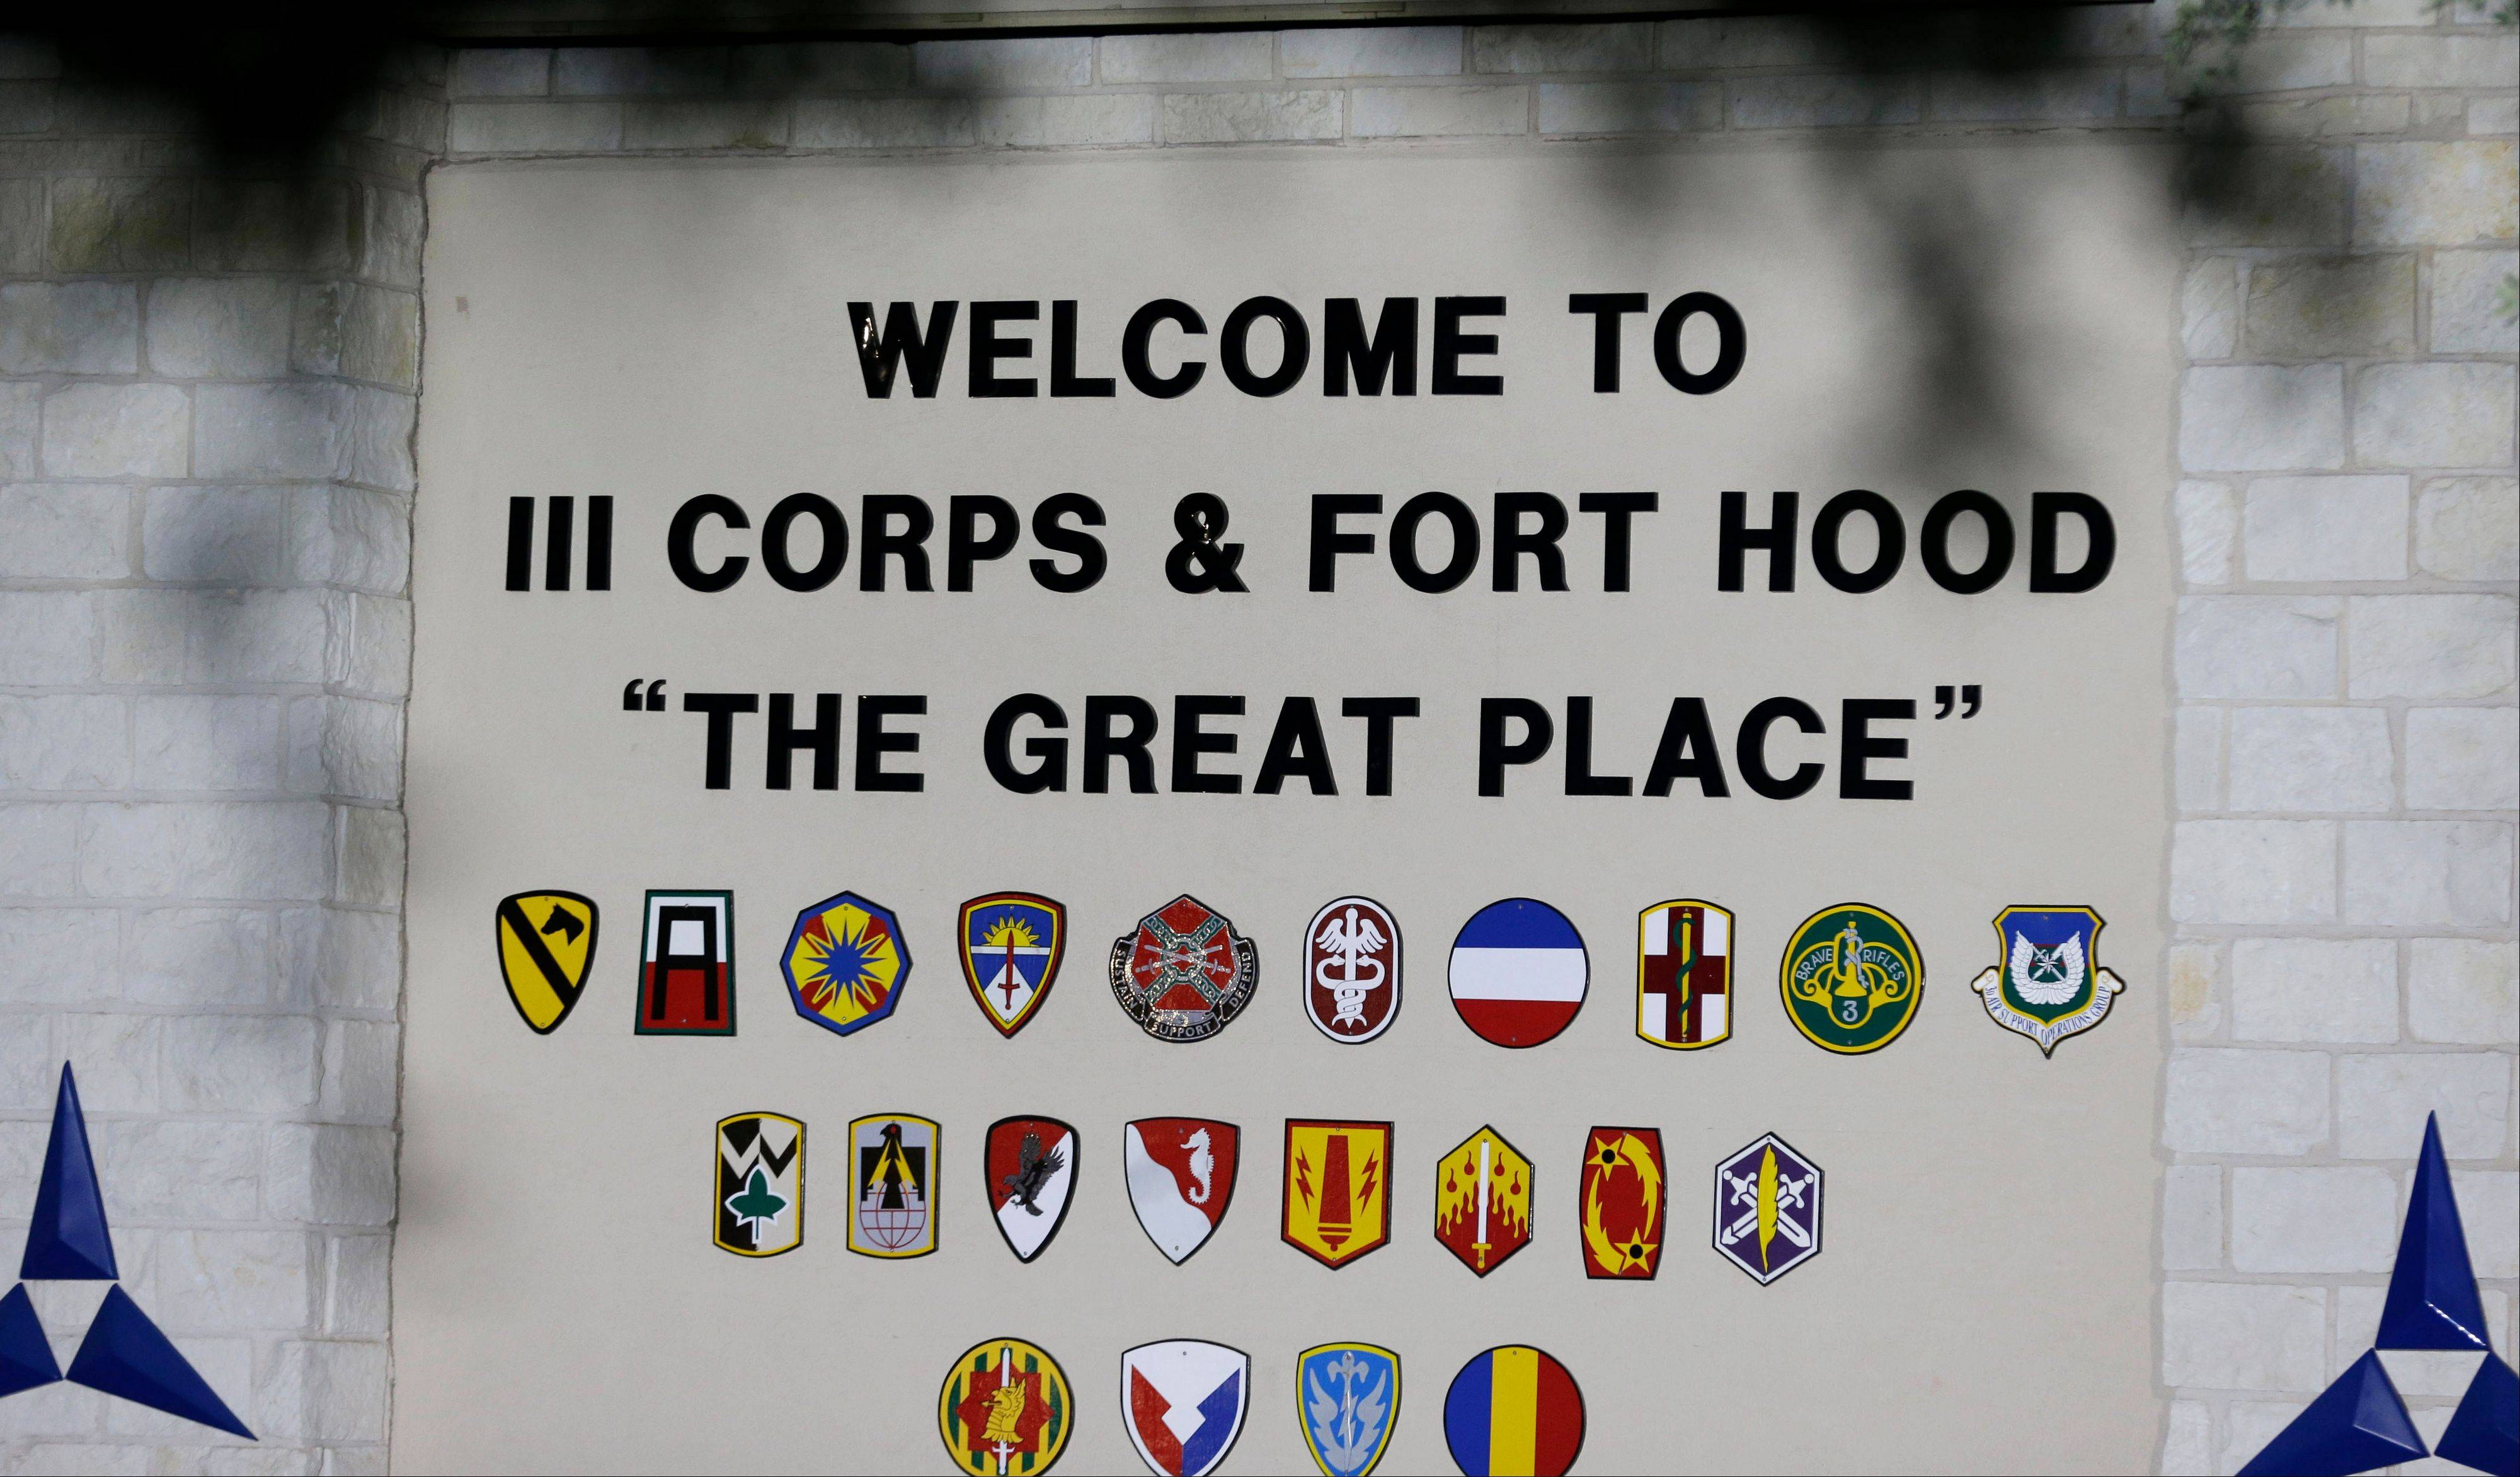 The main entrance of the Army base is shown where the start of the court-martial of Maj. Nidal Malik Hasan is taking place Tuesday, Aug. 6, 2013, in Forth Hood, Texas.